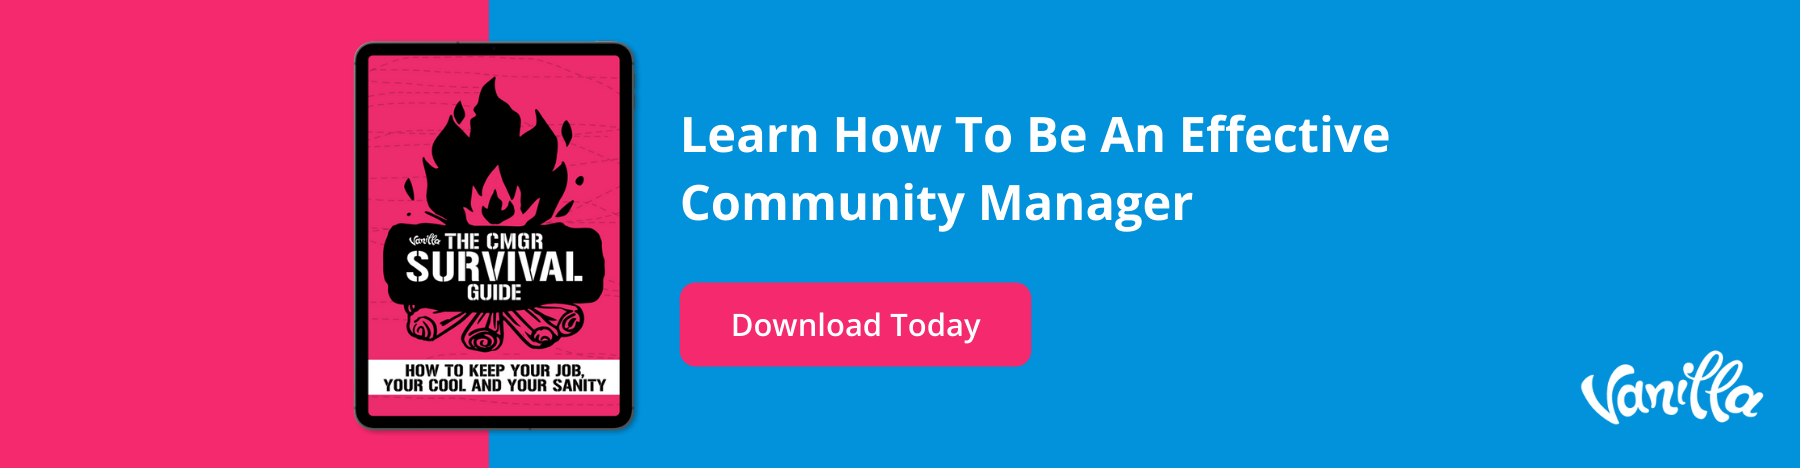 Community Manager Survival Guide